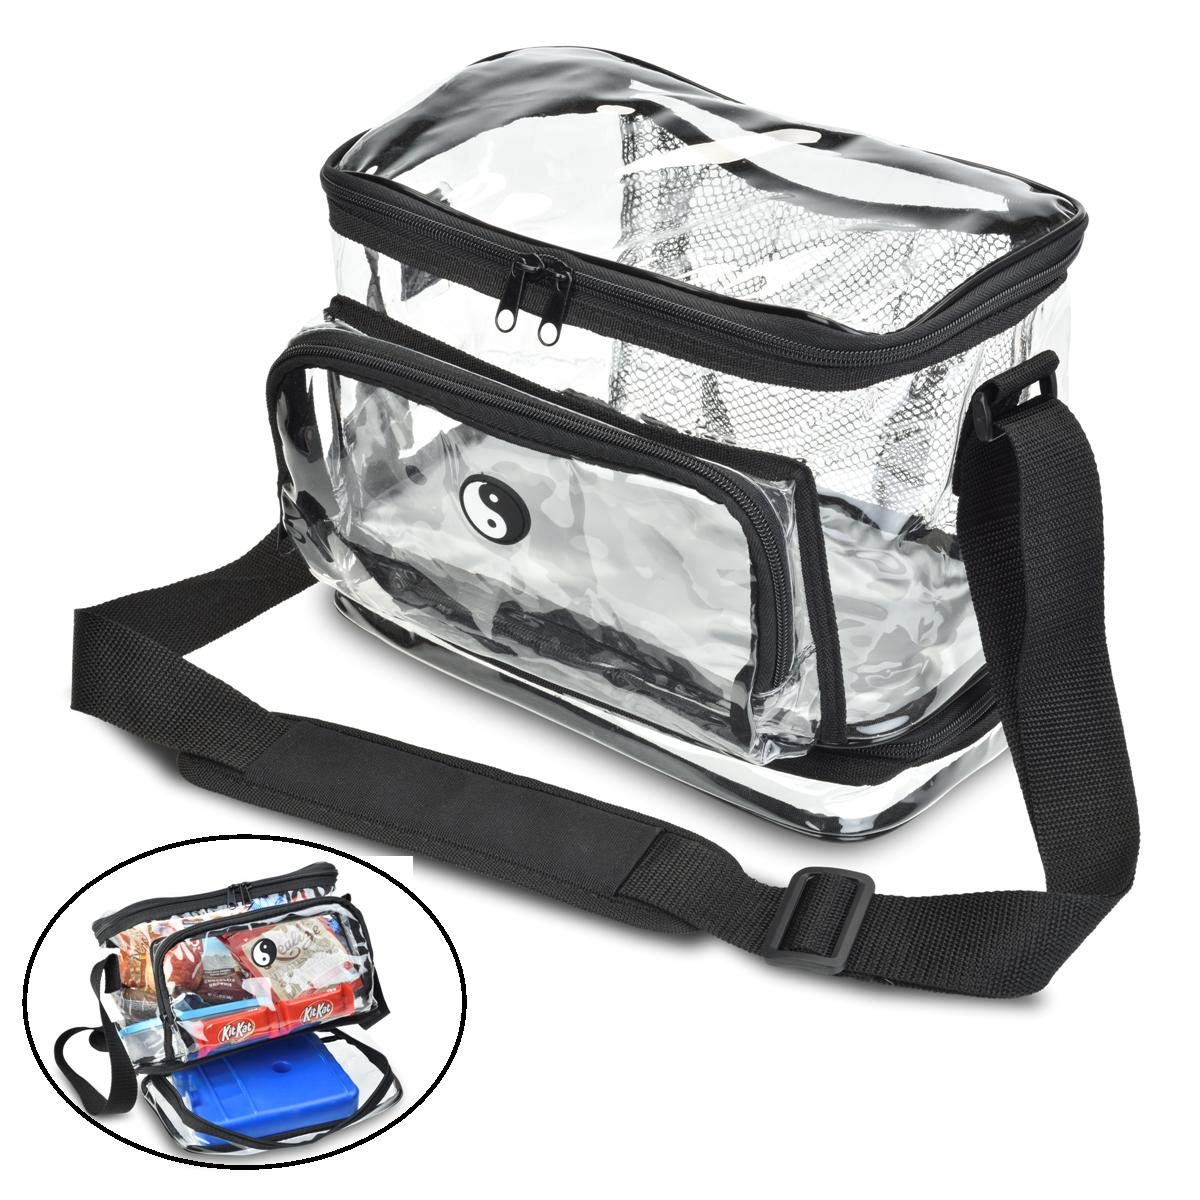 a48c9114c1ce HEAVY DUTY Clear Lunch Bag with Separate Cold Pack Compartment. KEEP YOUR  FOOD COOL LONGER! Features Include Adjustable Shoulder Strap & Front Zipper  ...